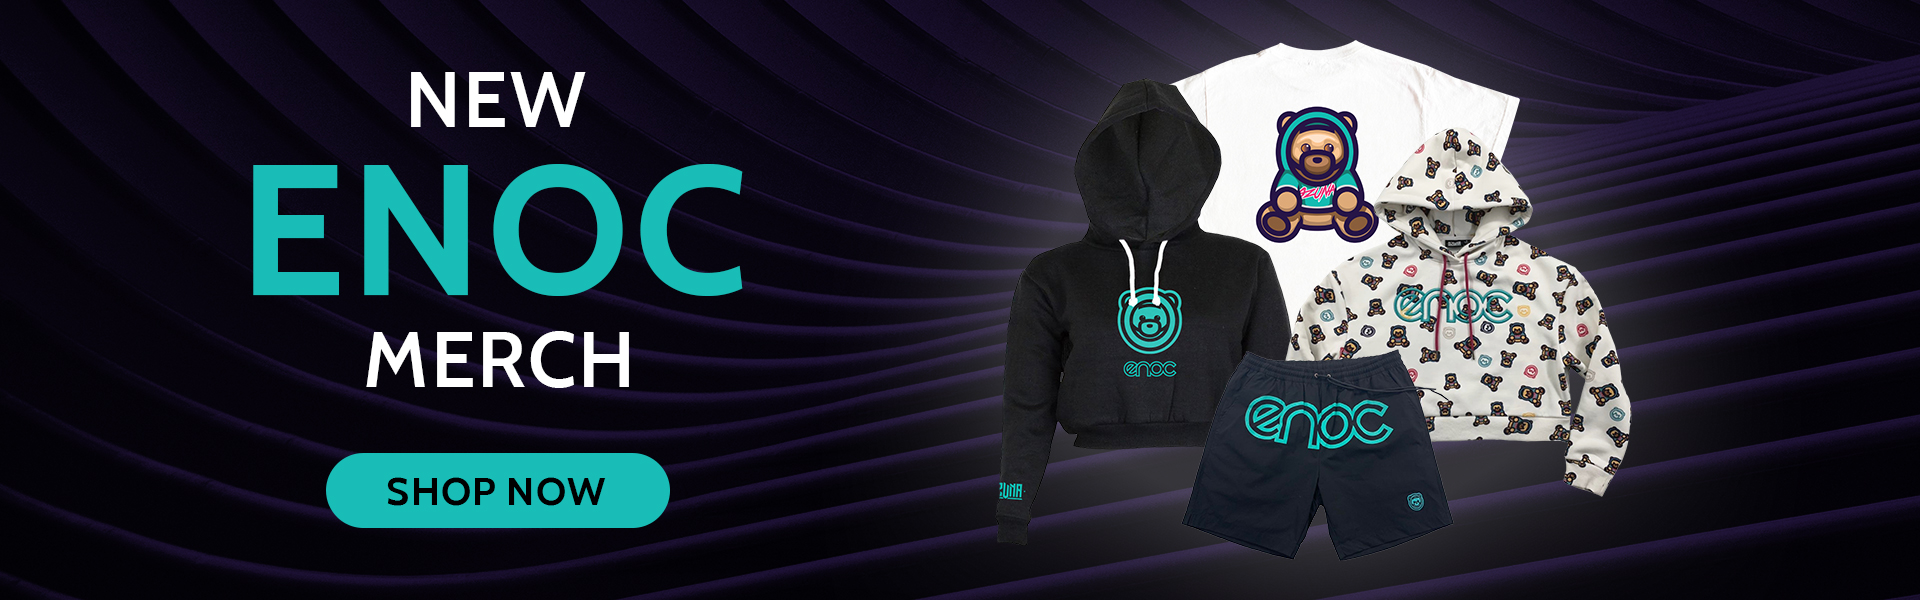 New ENOC Merch! Shop Now!